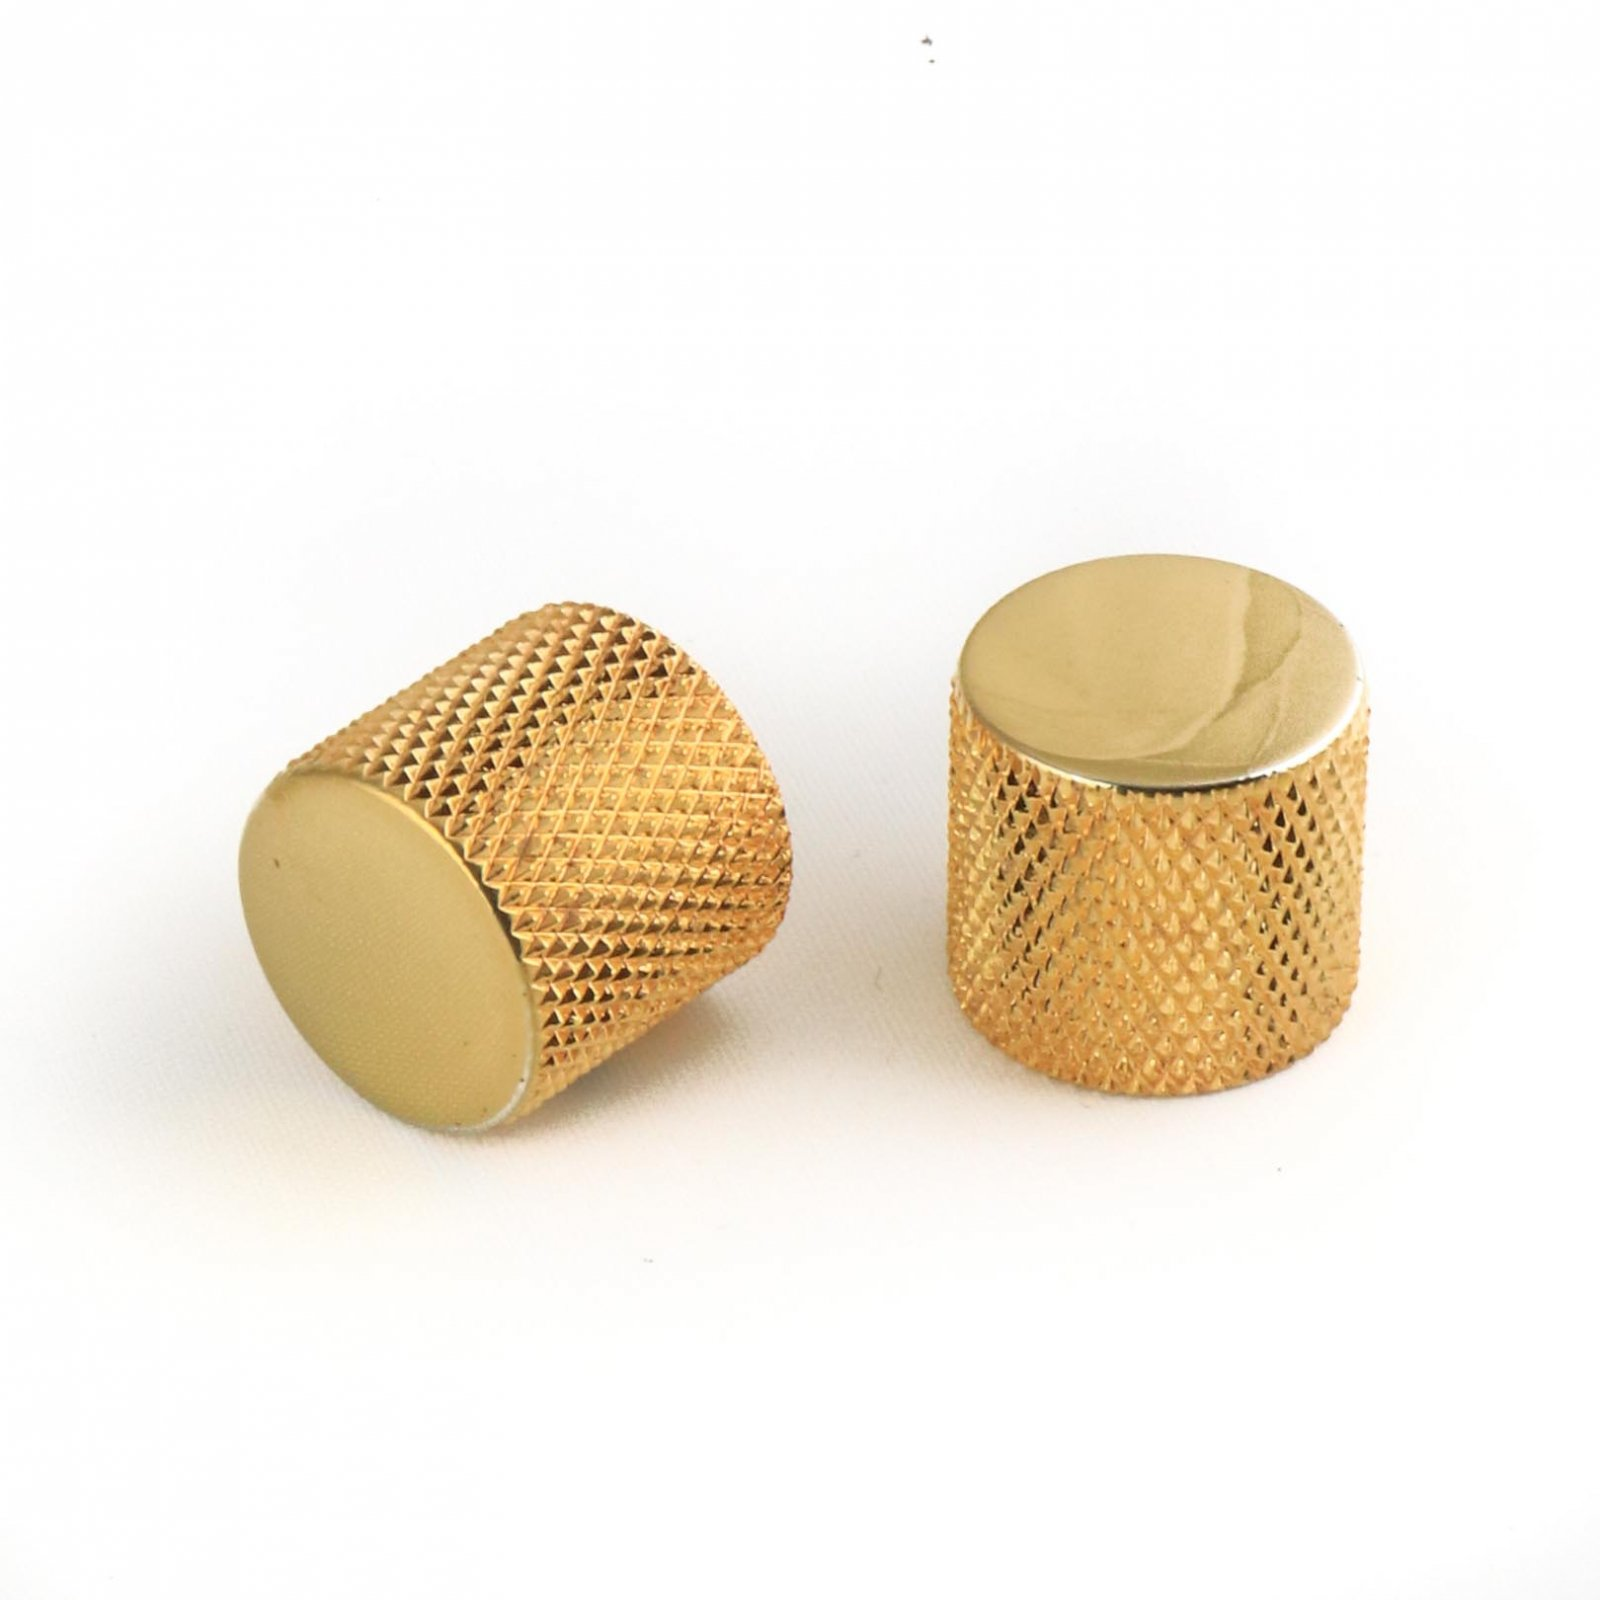 MannMade USA Knurled Flat Top Knob - Gold